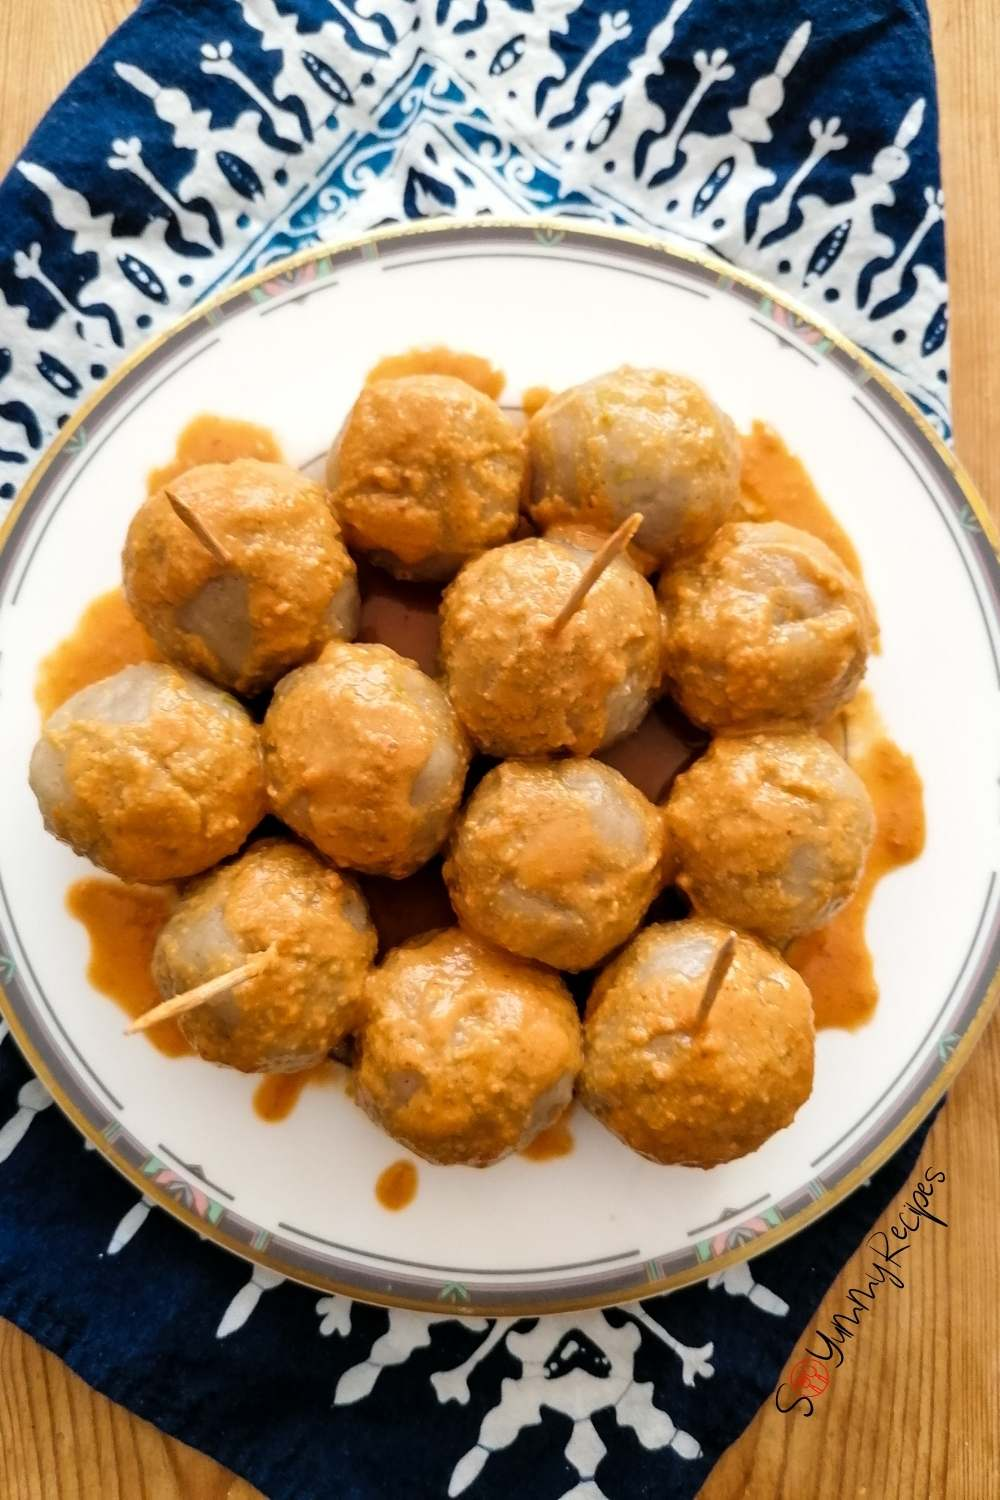 15 balls of Cilok - the chewy tapioca dumplings - on a white plate drizzled with spicy peanut sauce.